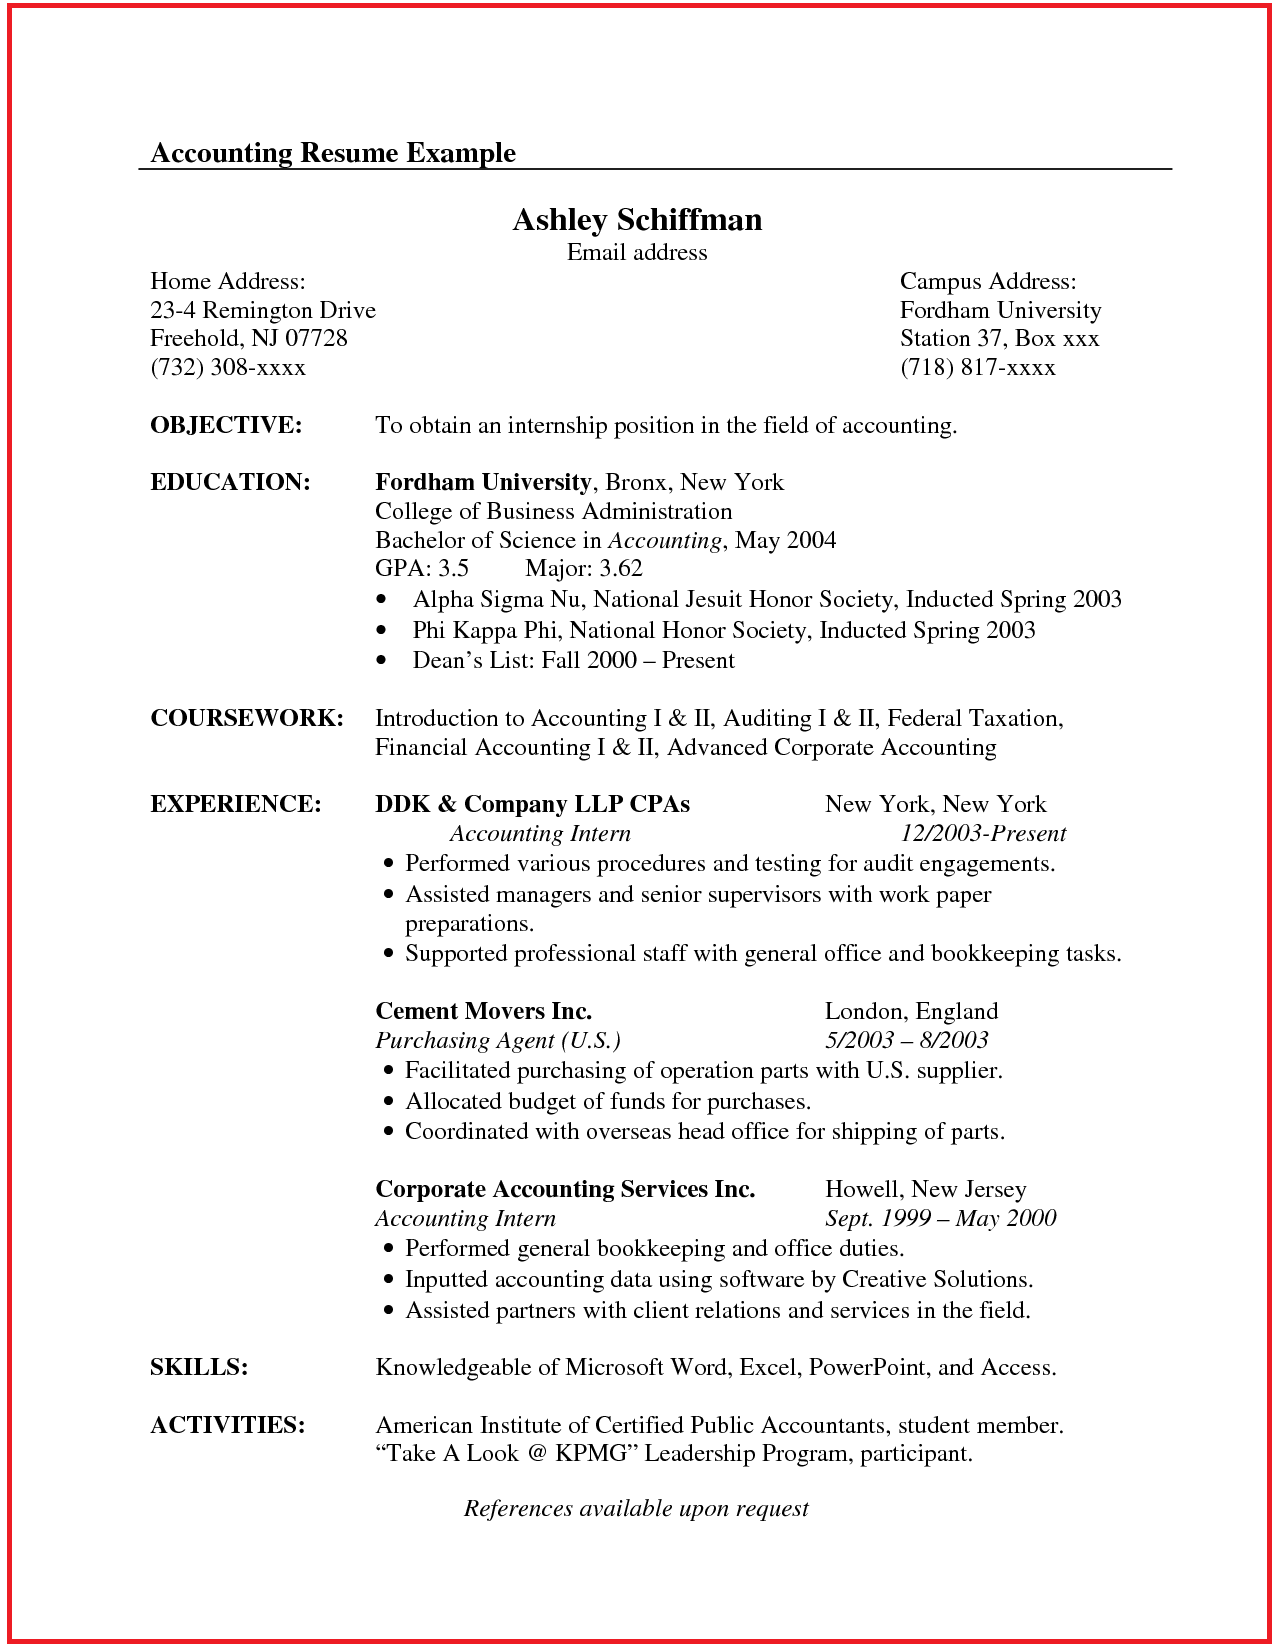 Pin By Golda On Letters Sample Resume Resume Resume Examples